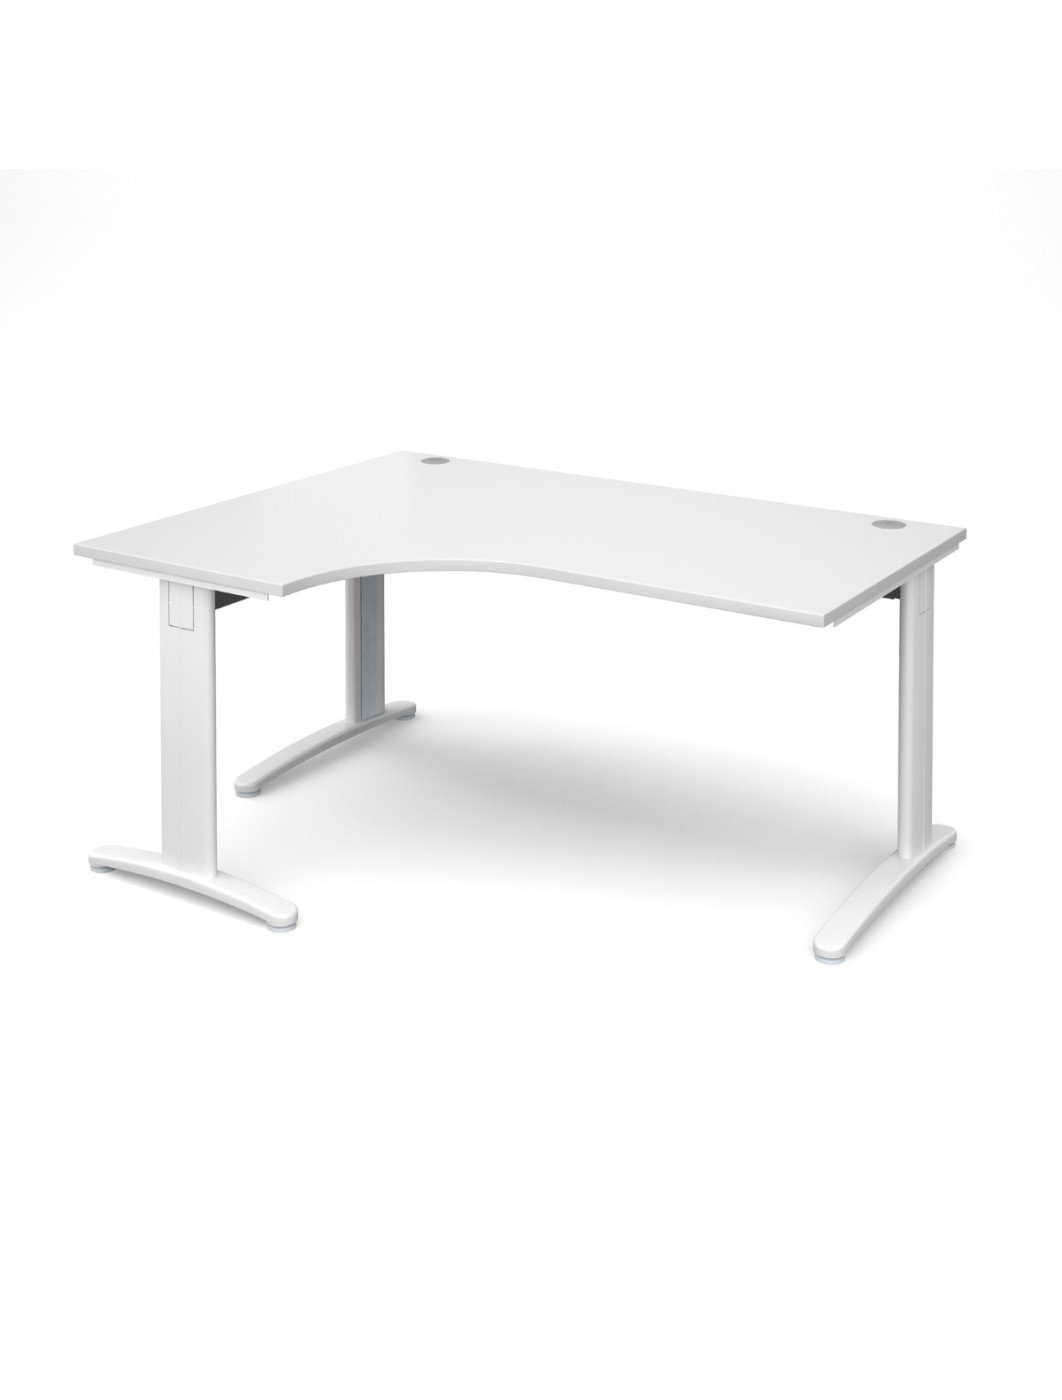 White Office Desk White Office Desk 1600mm Dams Tr10 Left Hand Ergo Deluxe Tdel16wh